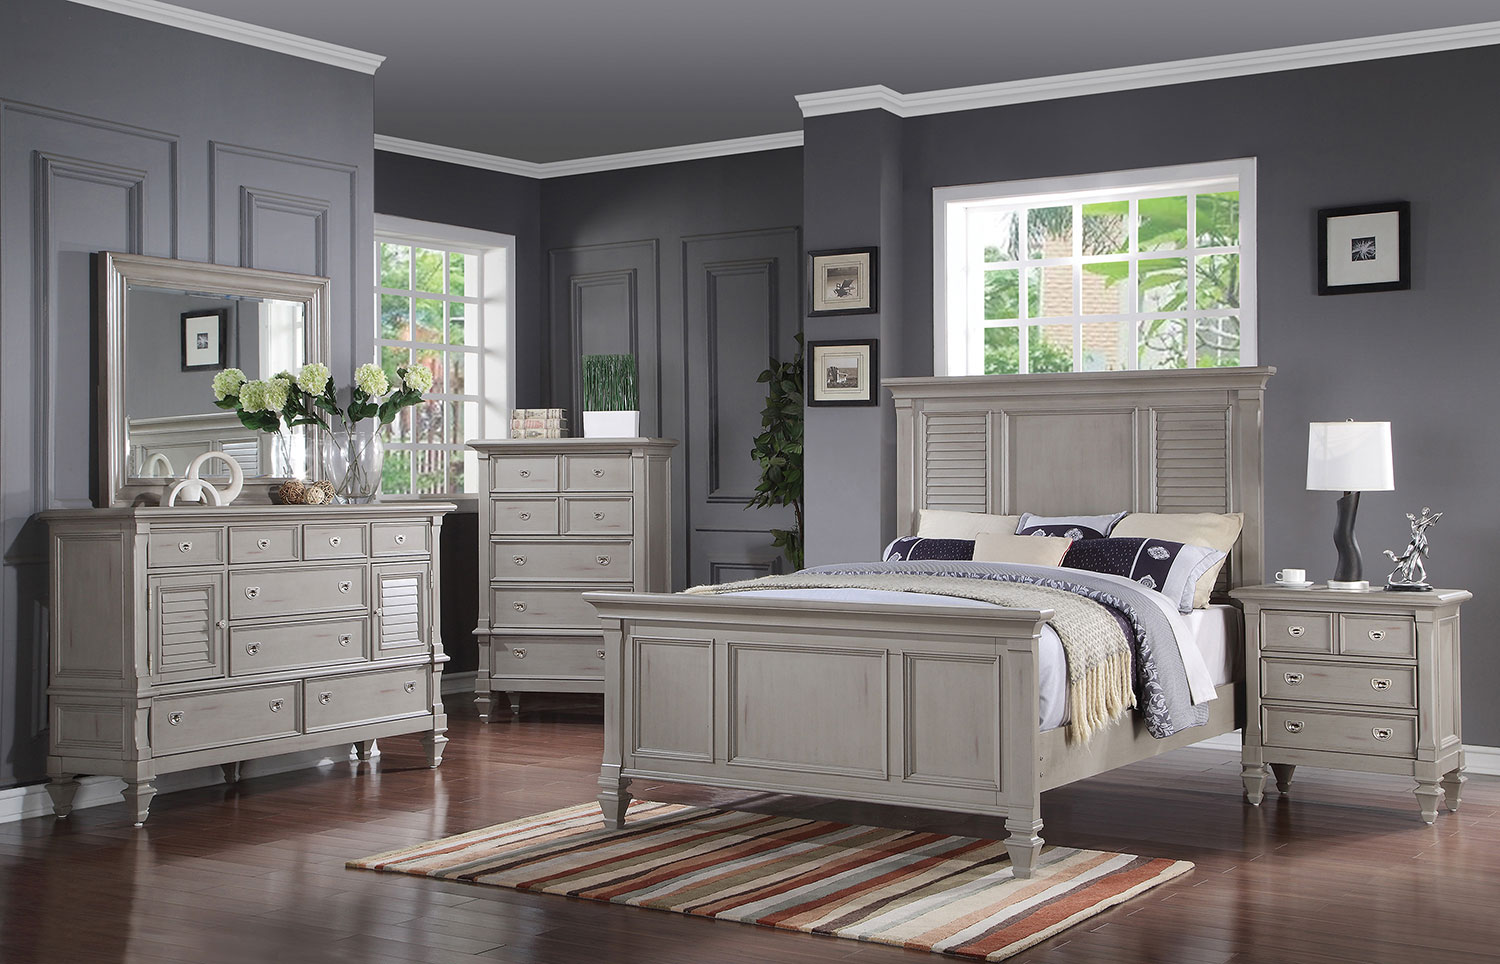 Brimley 4-Piece Queen Bedroom Set - Grey | Levin Furniture